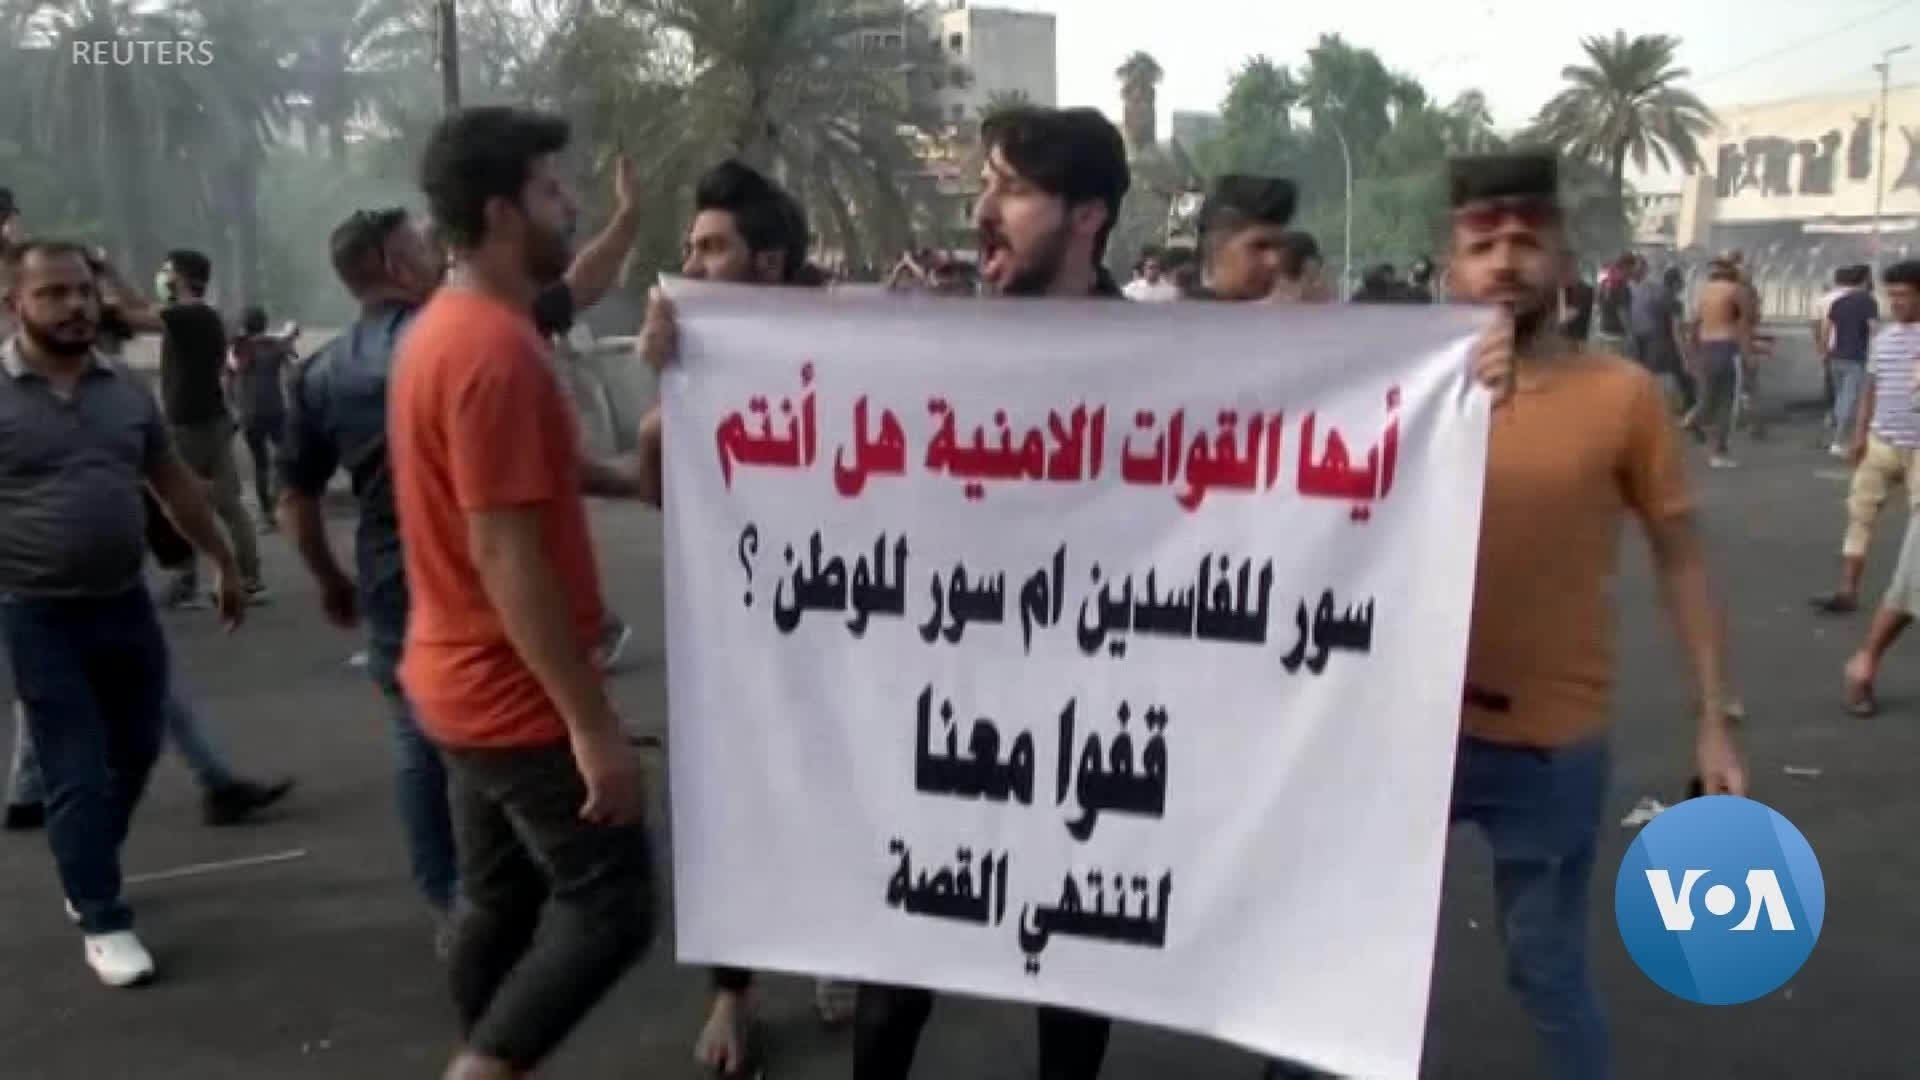 Iraq's PM Announces Reforms in Response to Deadly Protests